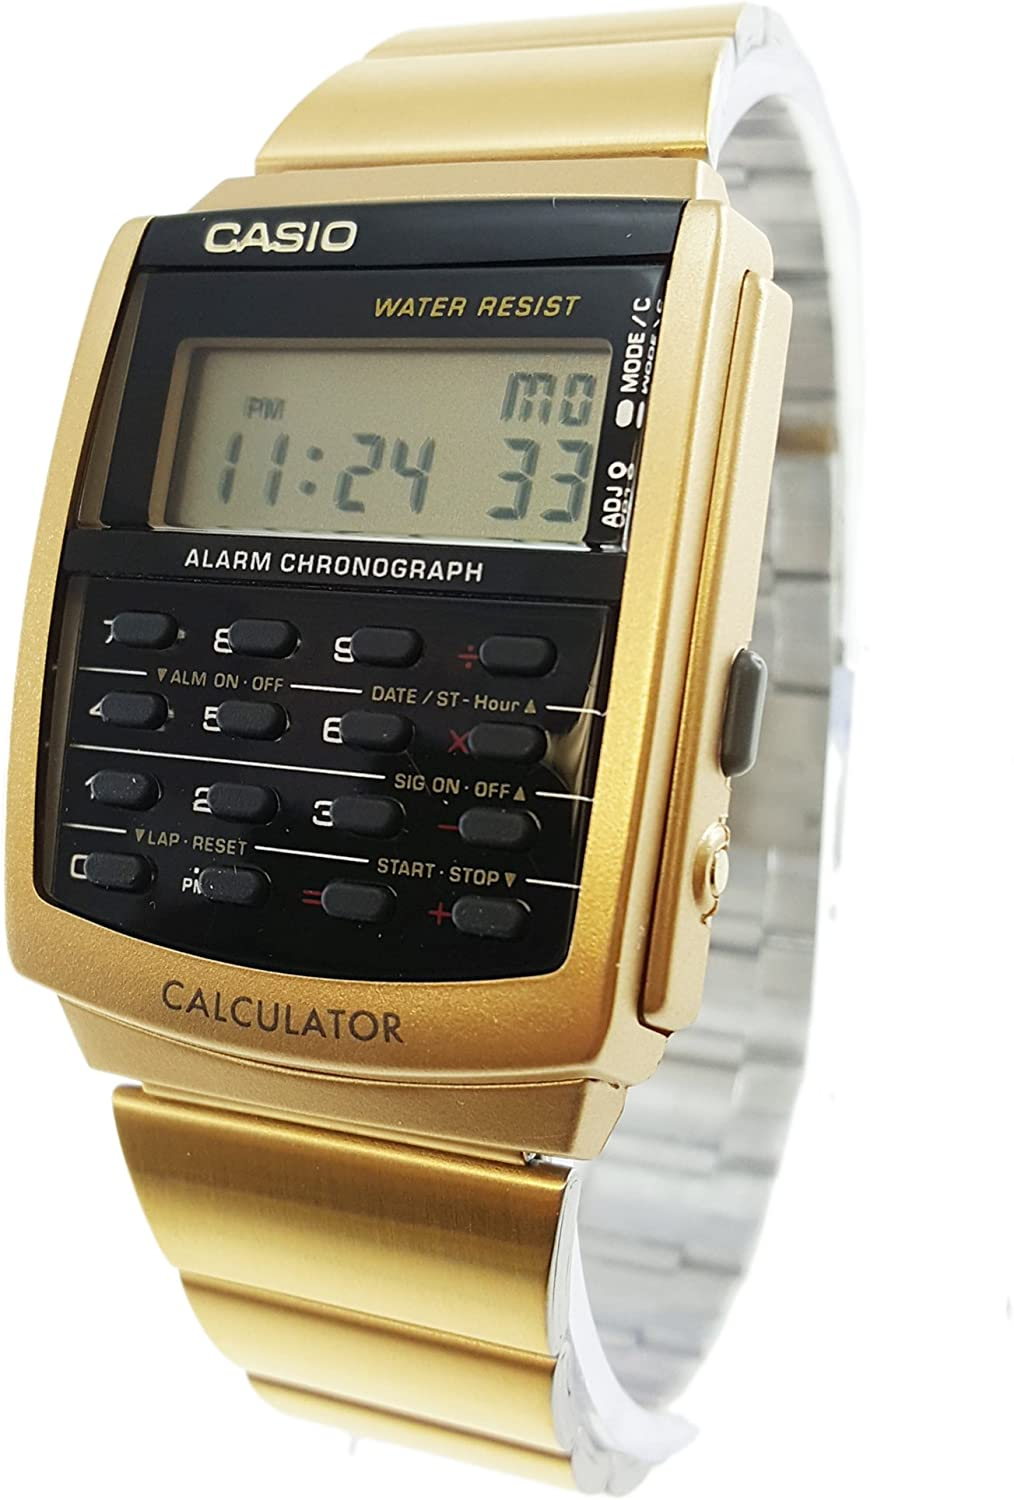 Best calculator watches for men 2020